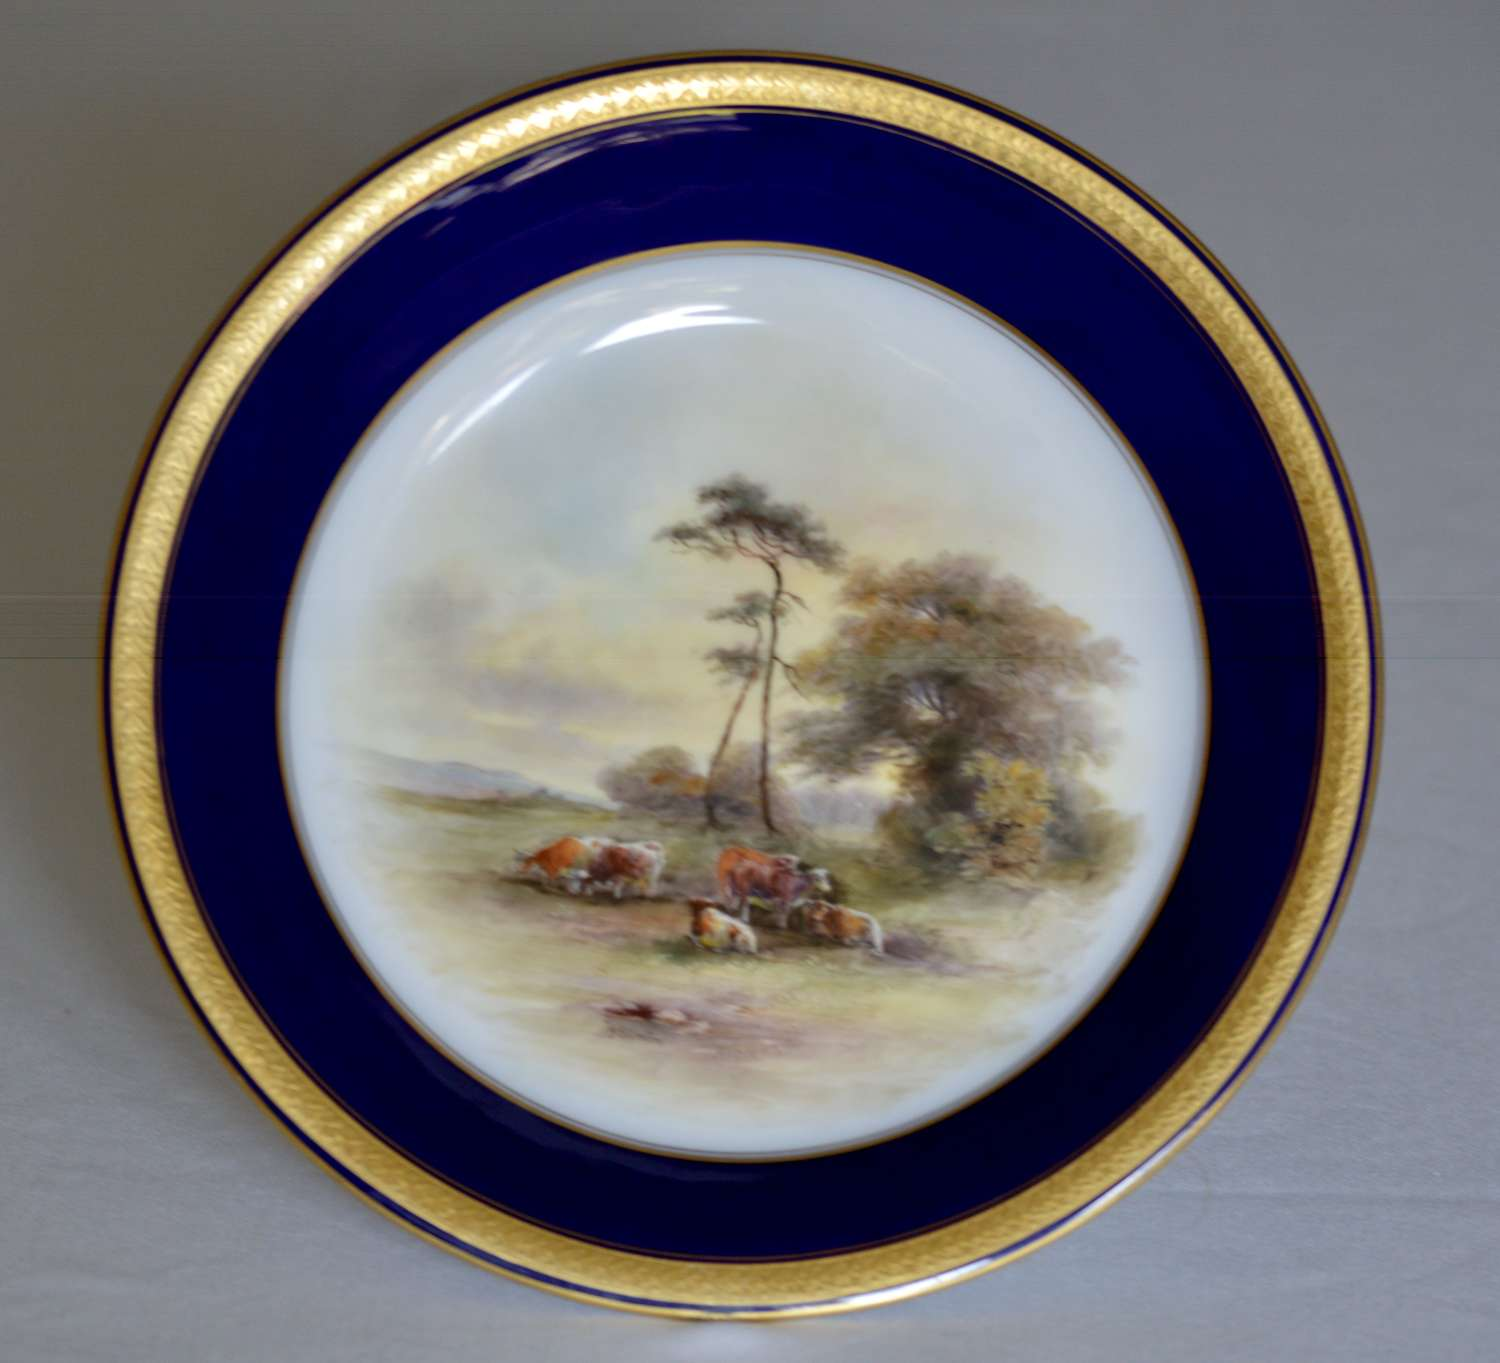 Royal Worcester Dish 1914 Hand-Painted Lowland Cattle by John Stinton